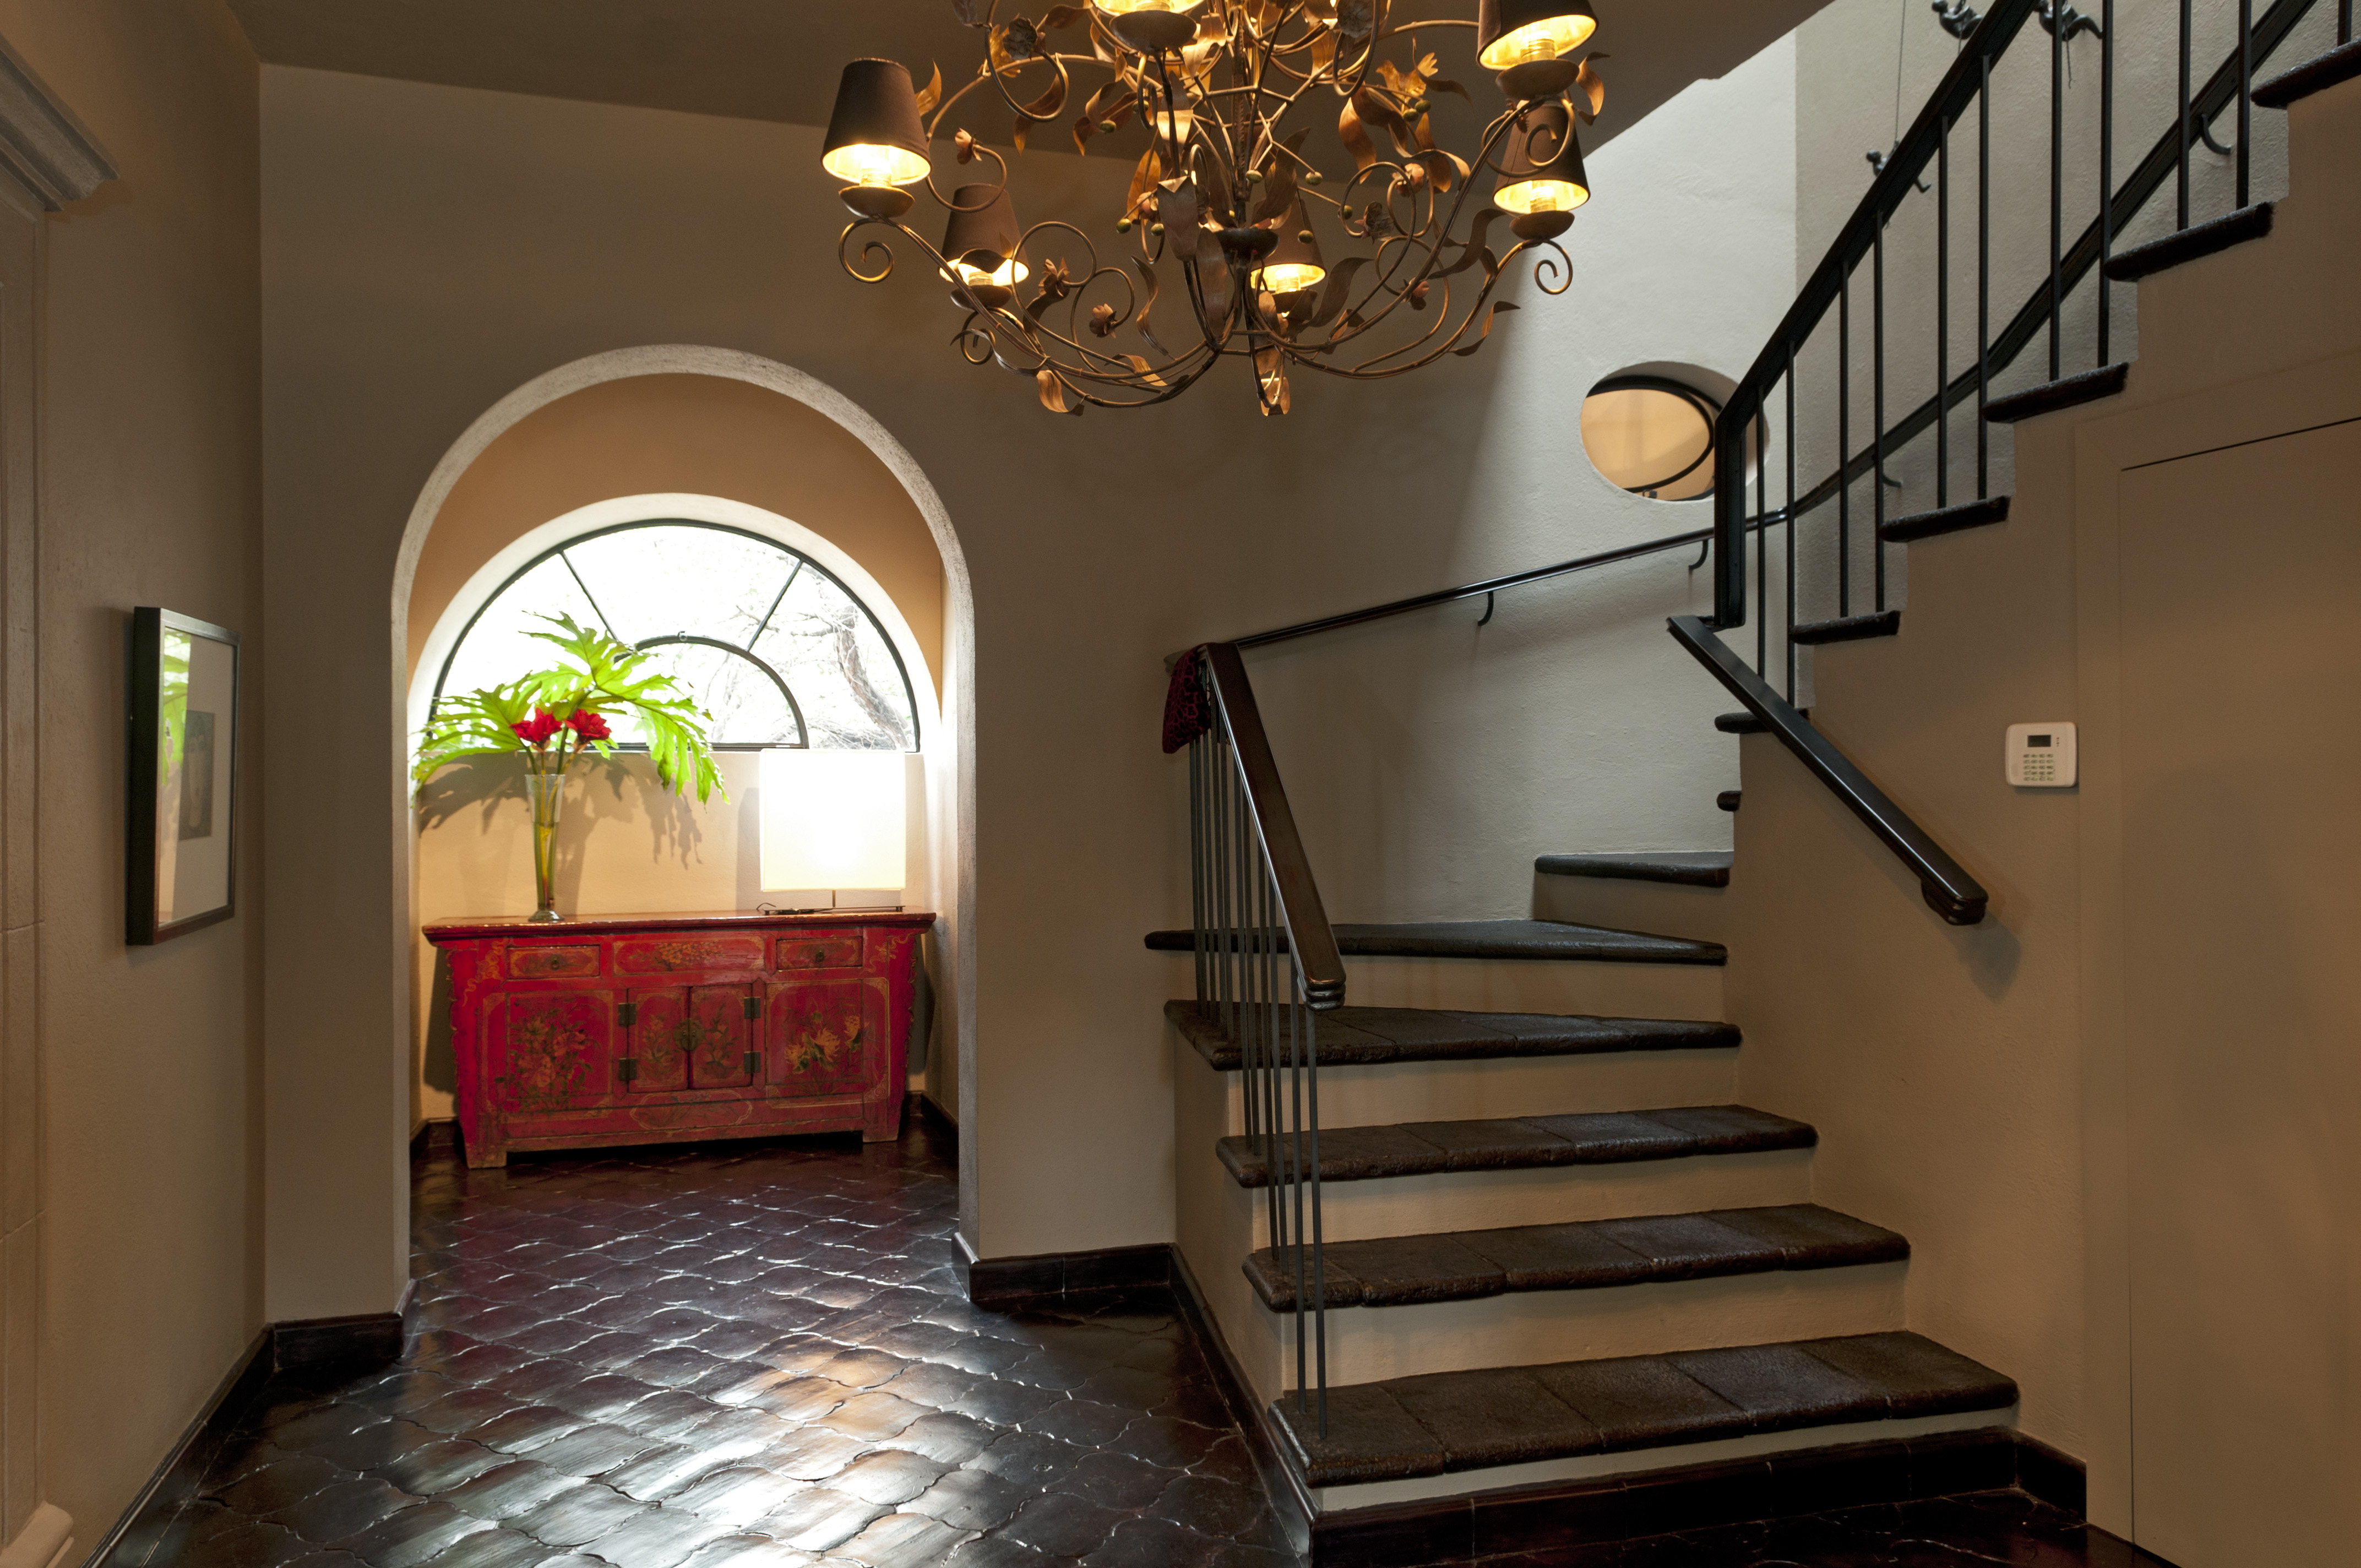 Casa Alegria entry stairway to 2nd floor